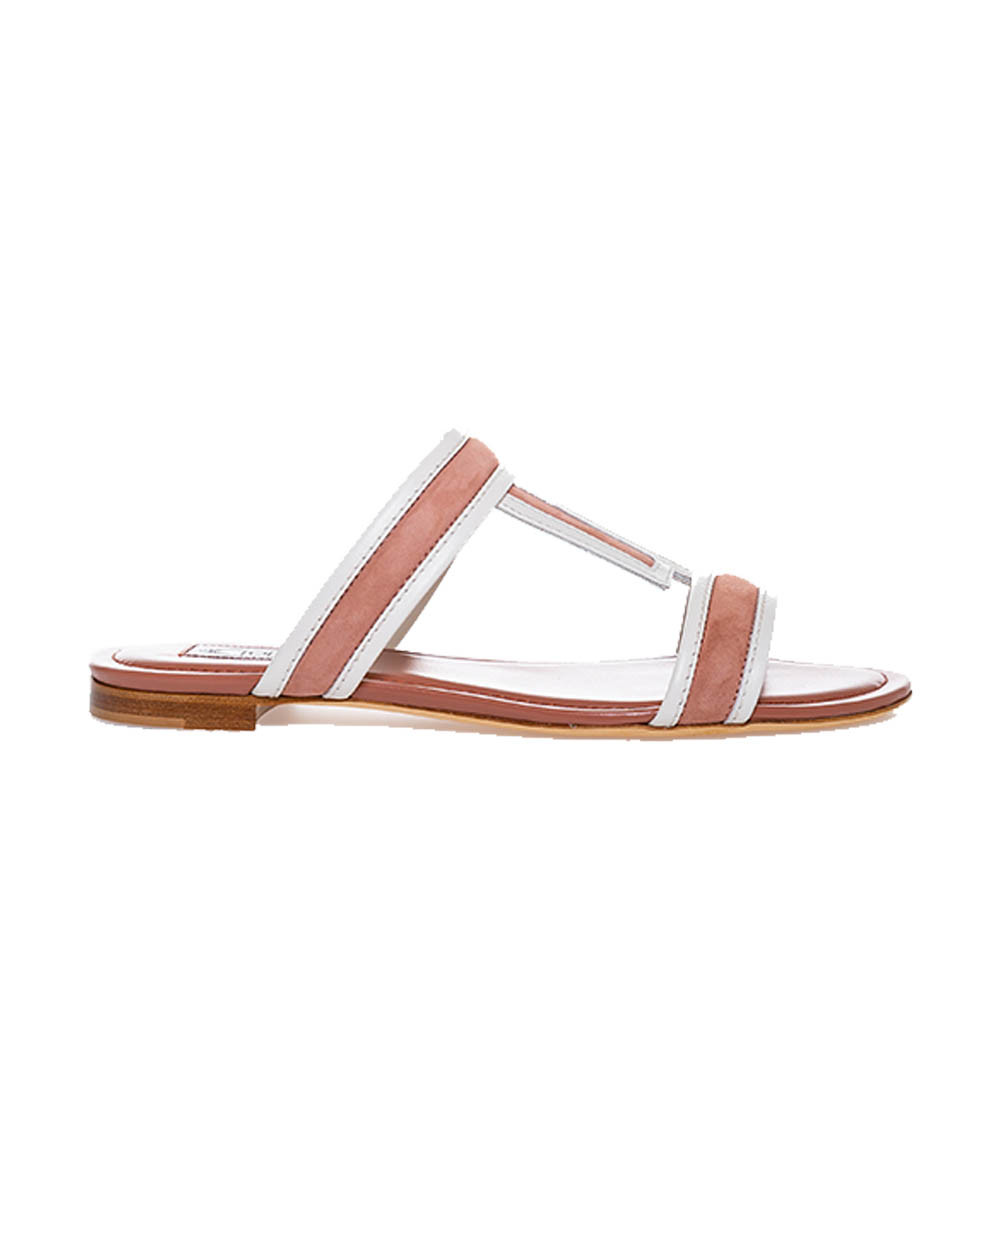 Slippers Tod's antique pink and ivory for women